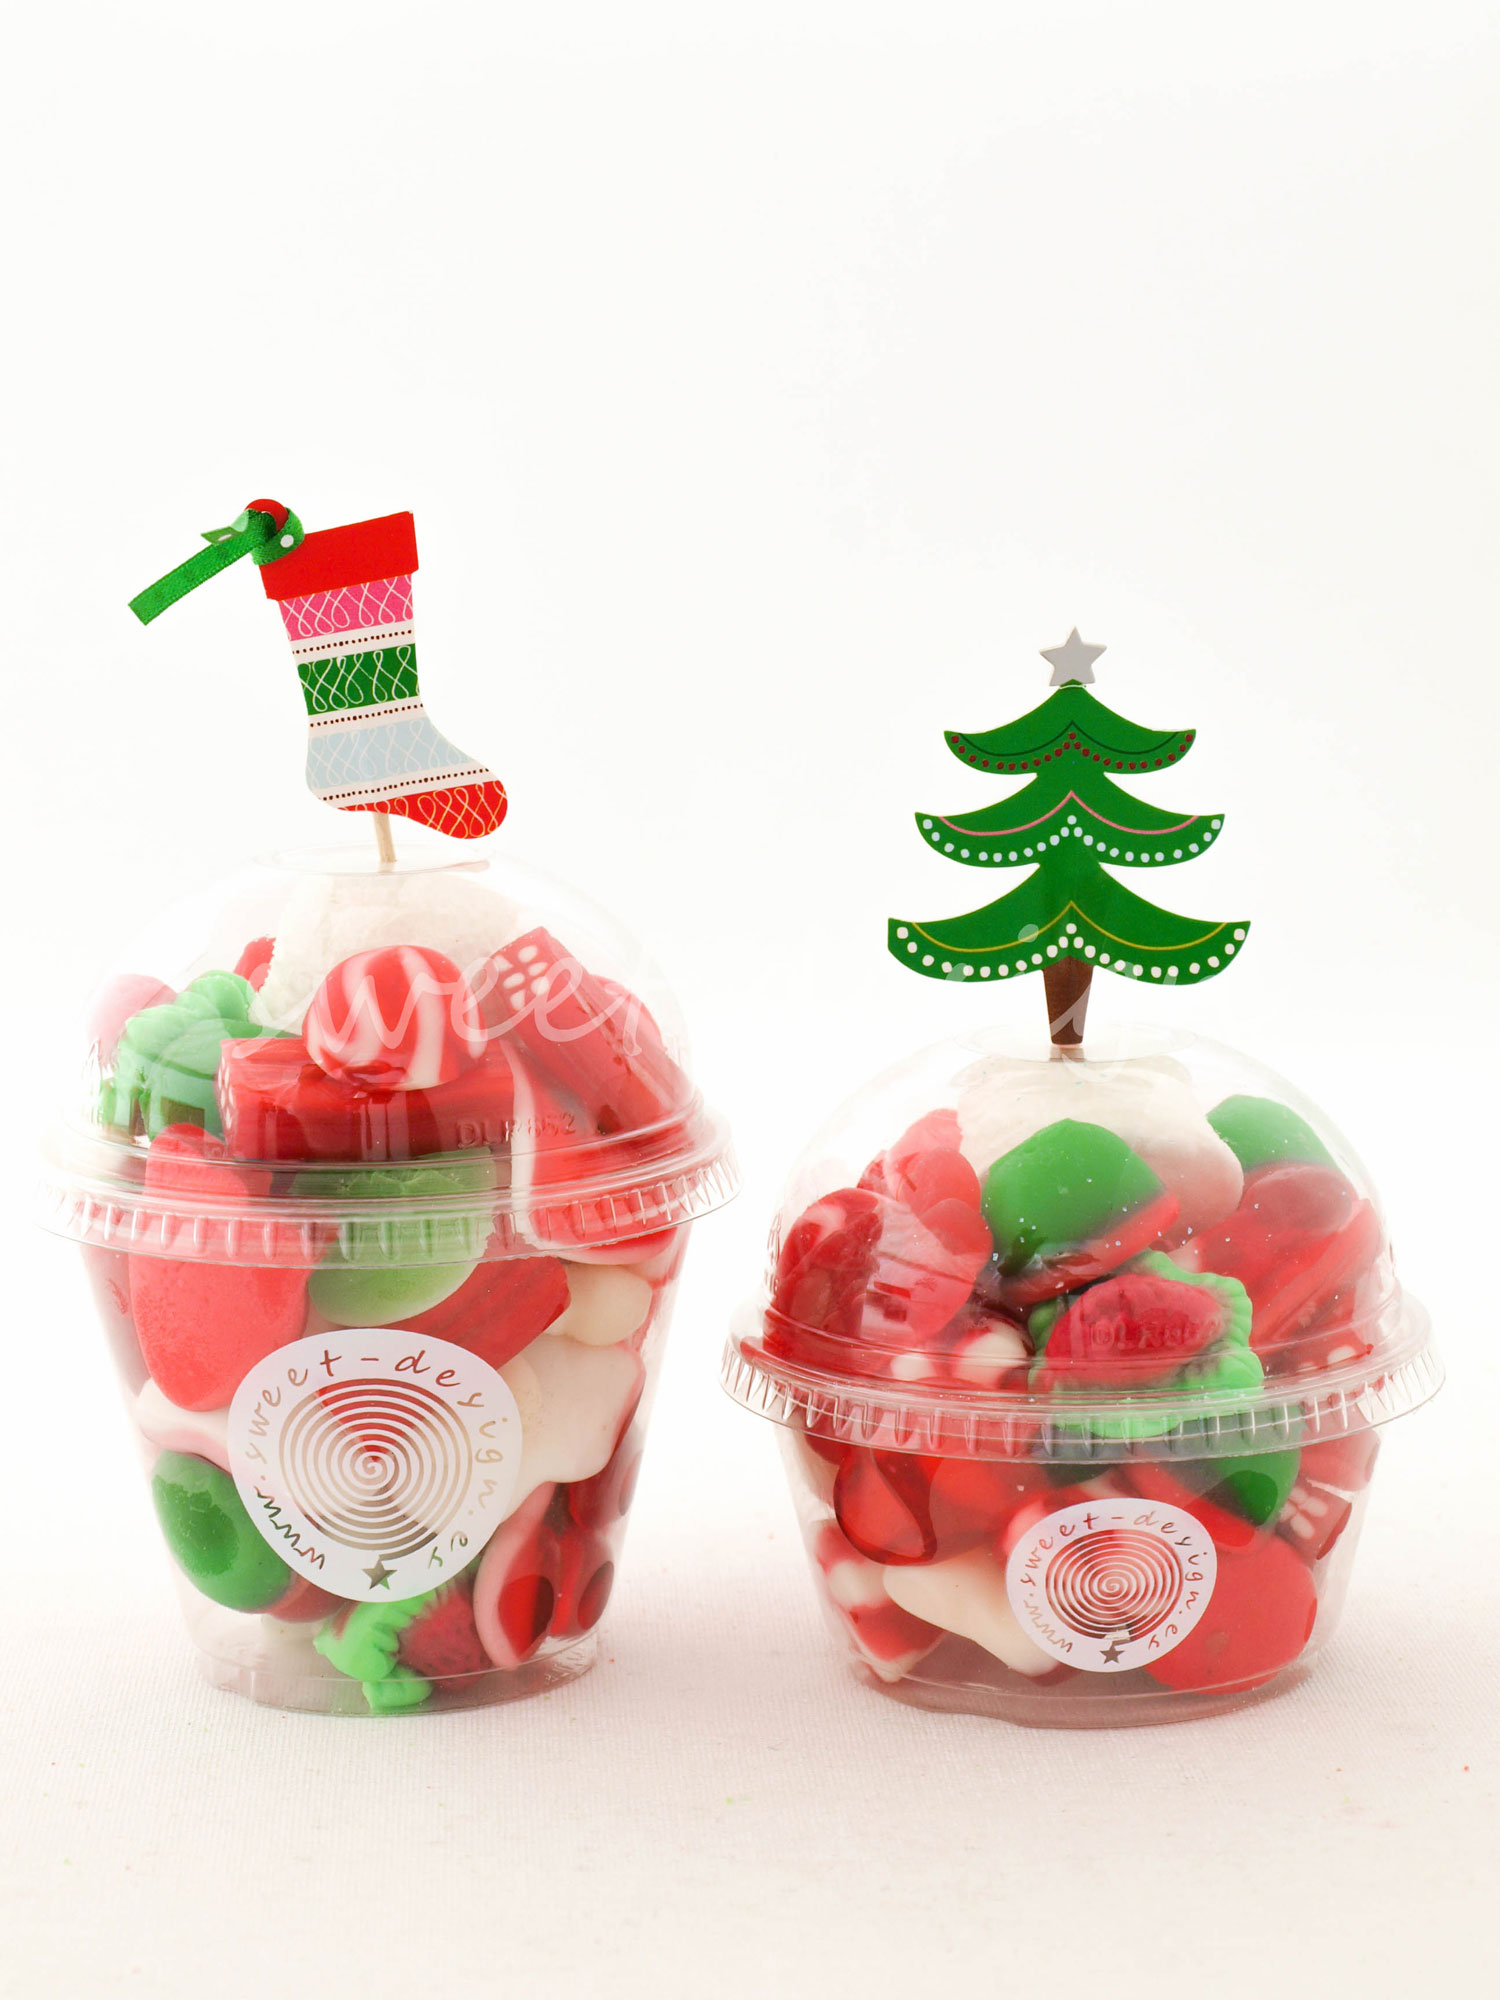 Pin decoracion y etiqueta on pinterest - Adornos con chuches ...